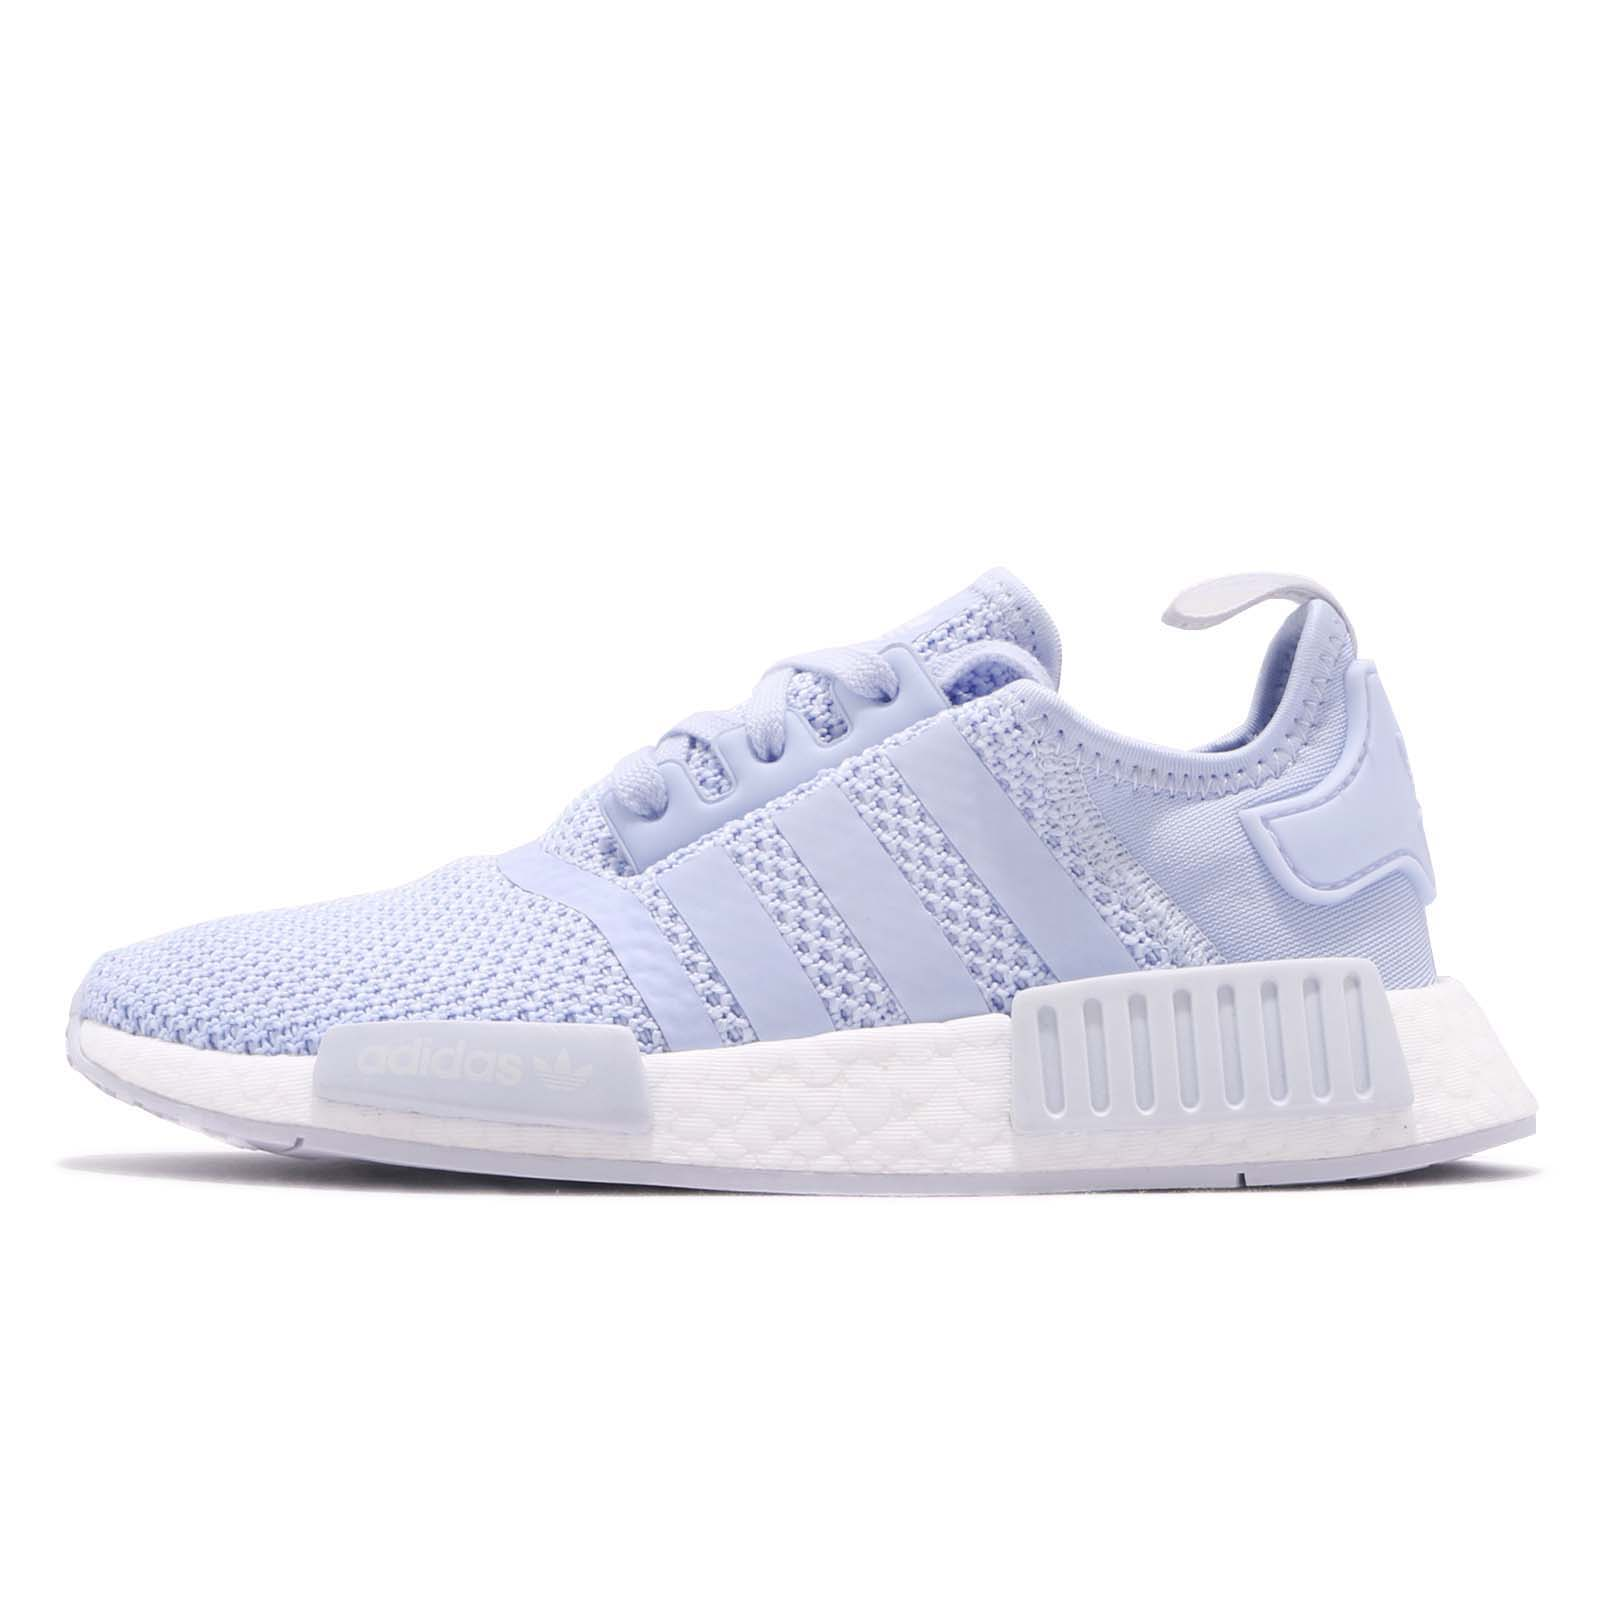 136716f41 Details about adidas Originals NMD R1 W Aero Blue White Women Running Shoes  Sneakers B37653